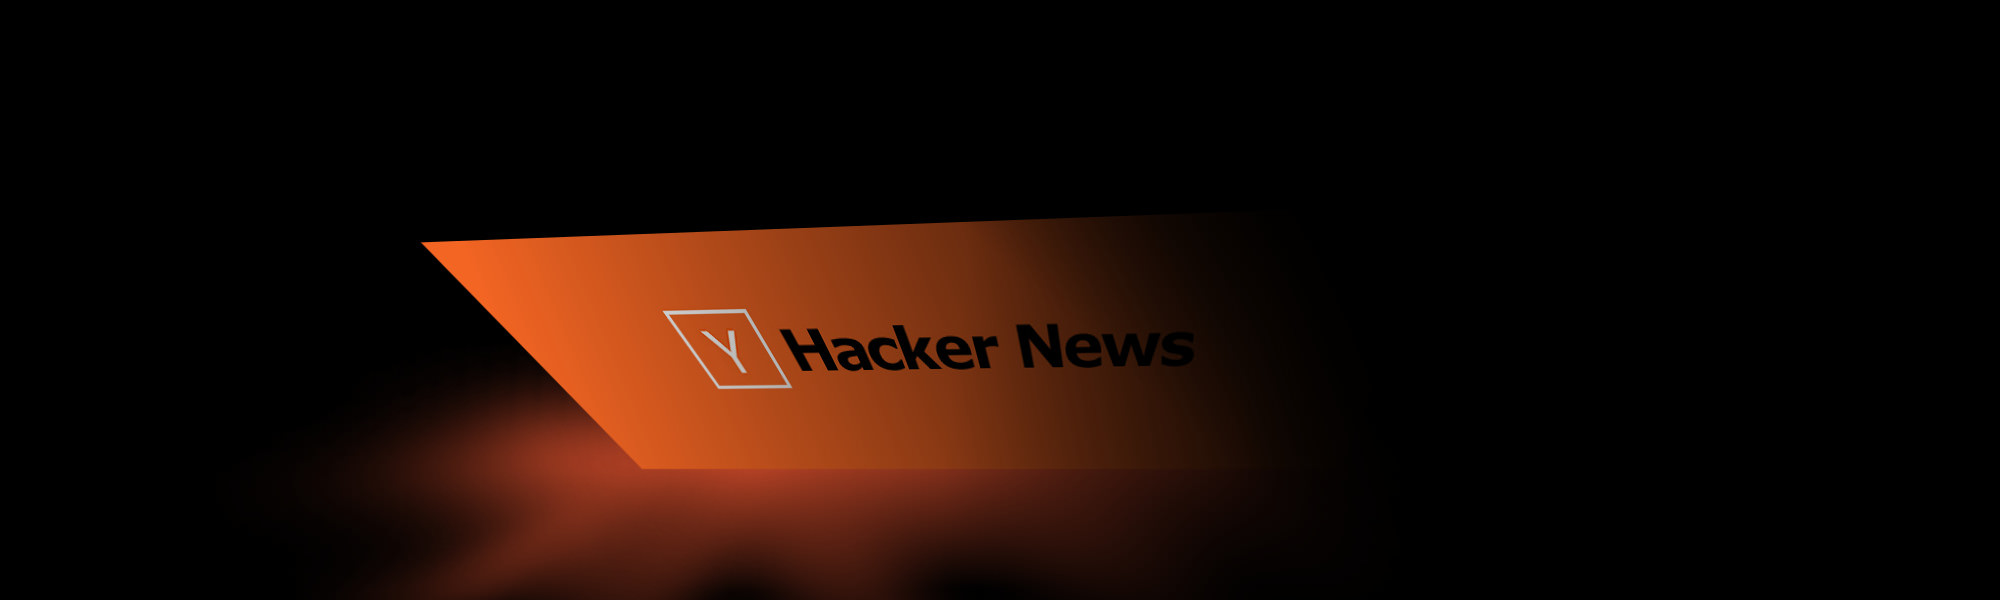 What I understood and what problems I encountered, creating a clone of Hacker News